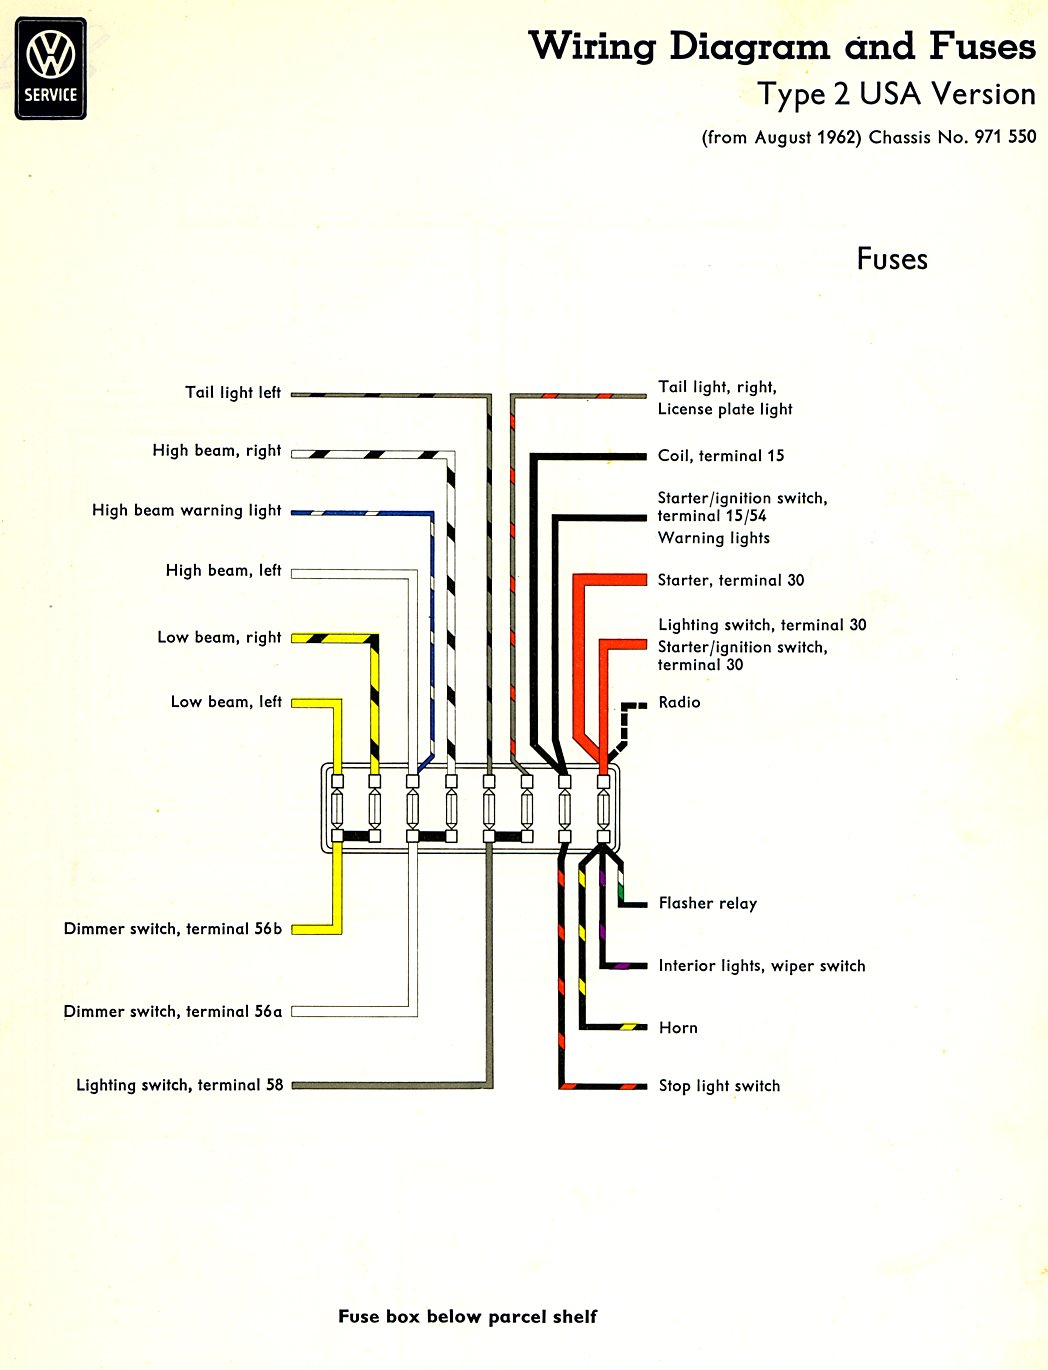 Type 2 Wiring Diagrams Chevy Turn Signal Diagram Get Free Image About